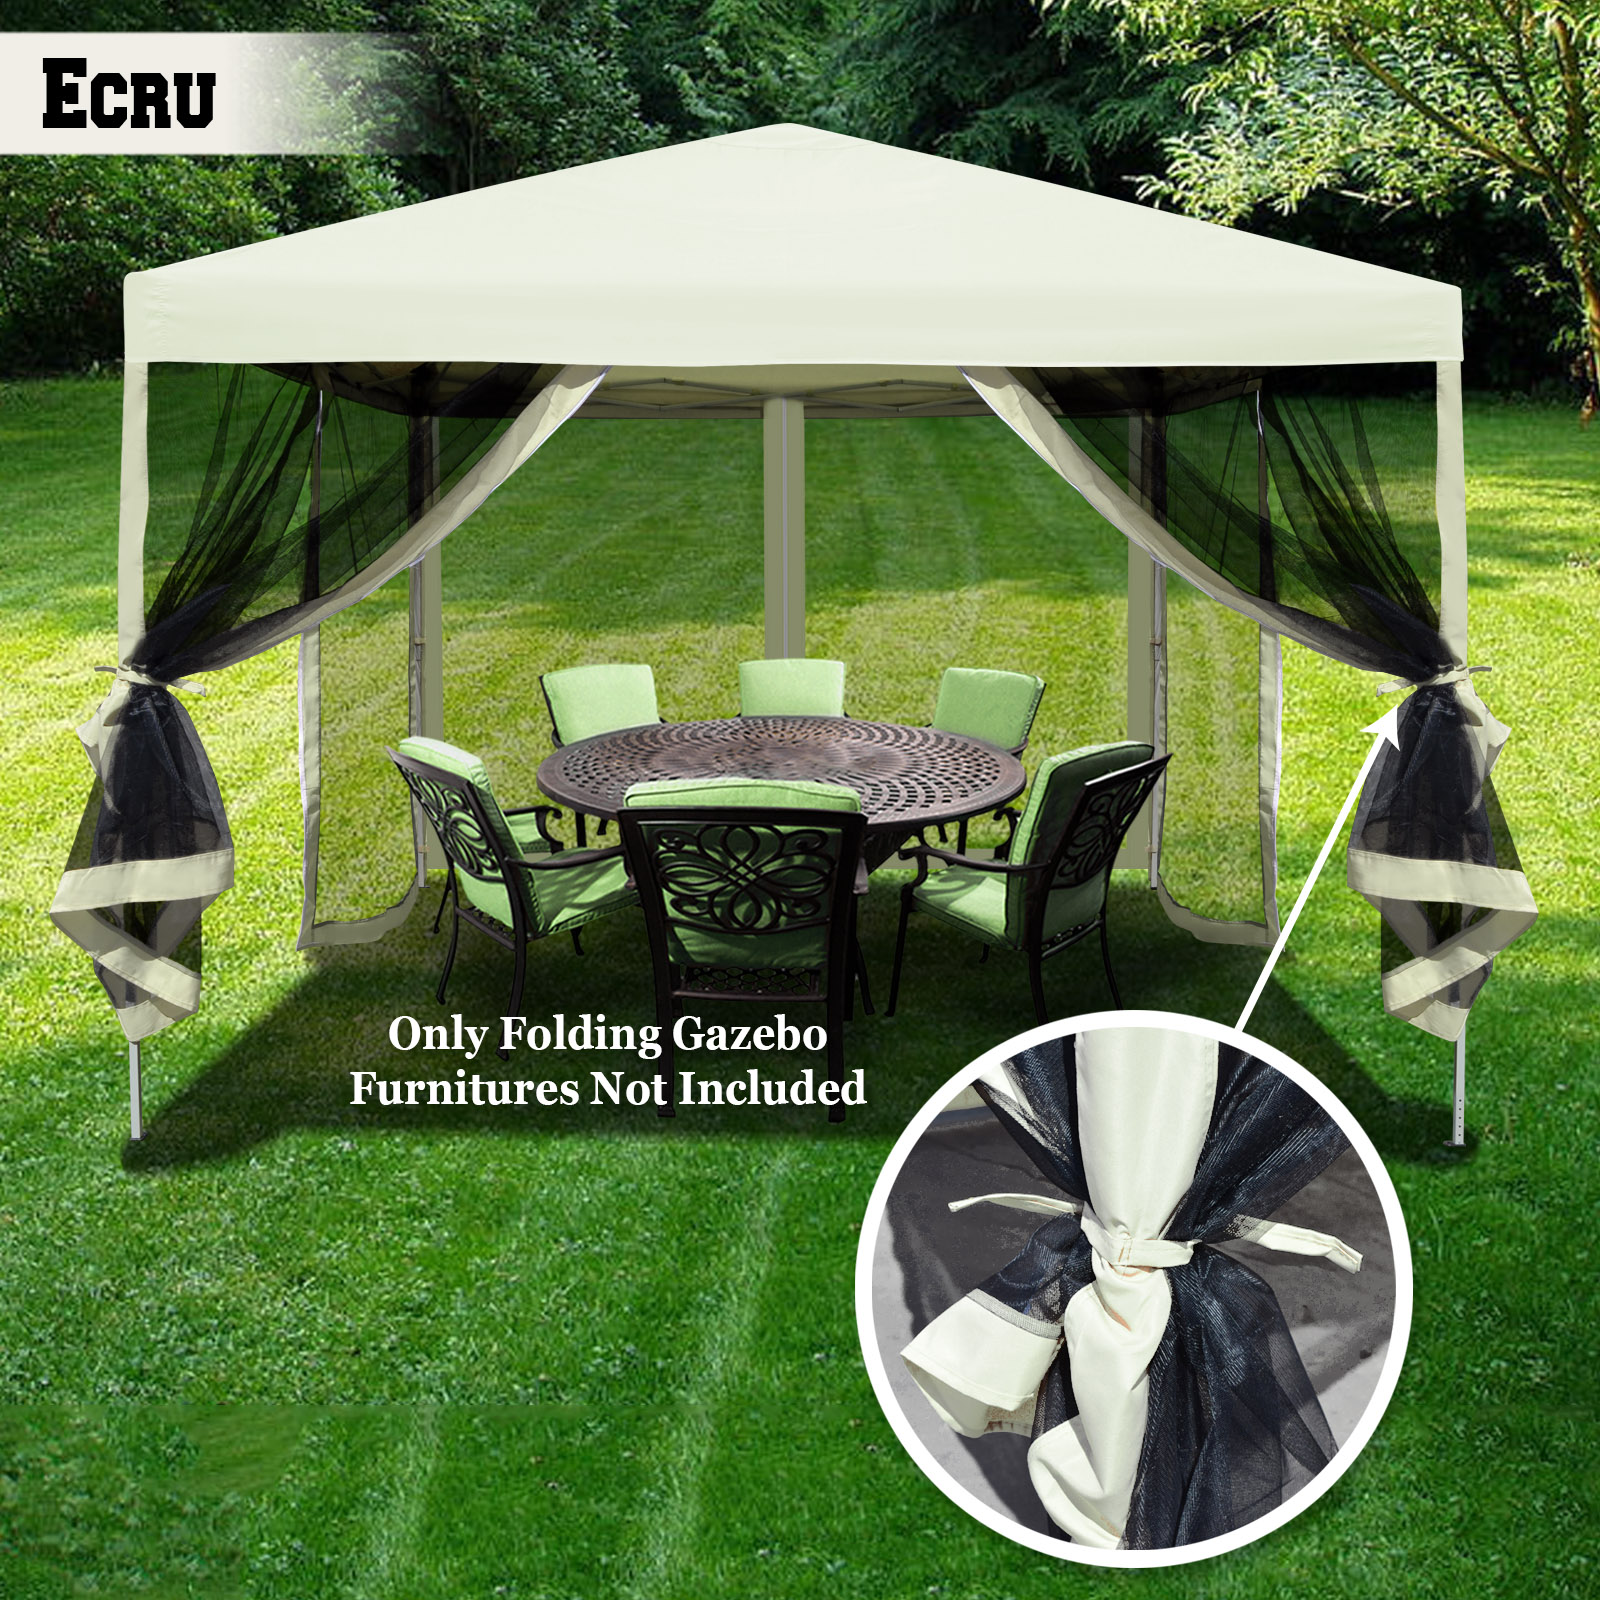 Strong Camel Easy Pop Up Canopy Tent 10-Feet x 10-Feet Gazebo with Mesh Side Walls Screen House-Ecru - Walmart.com & Strong Camel Easy Pop Up Canopy Tent 10-Feet x 10-Feet Gazebo with ...